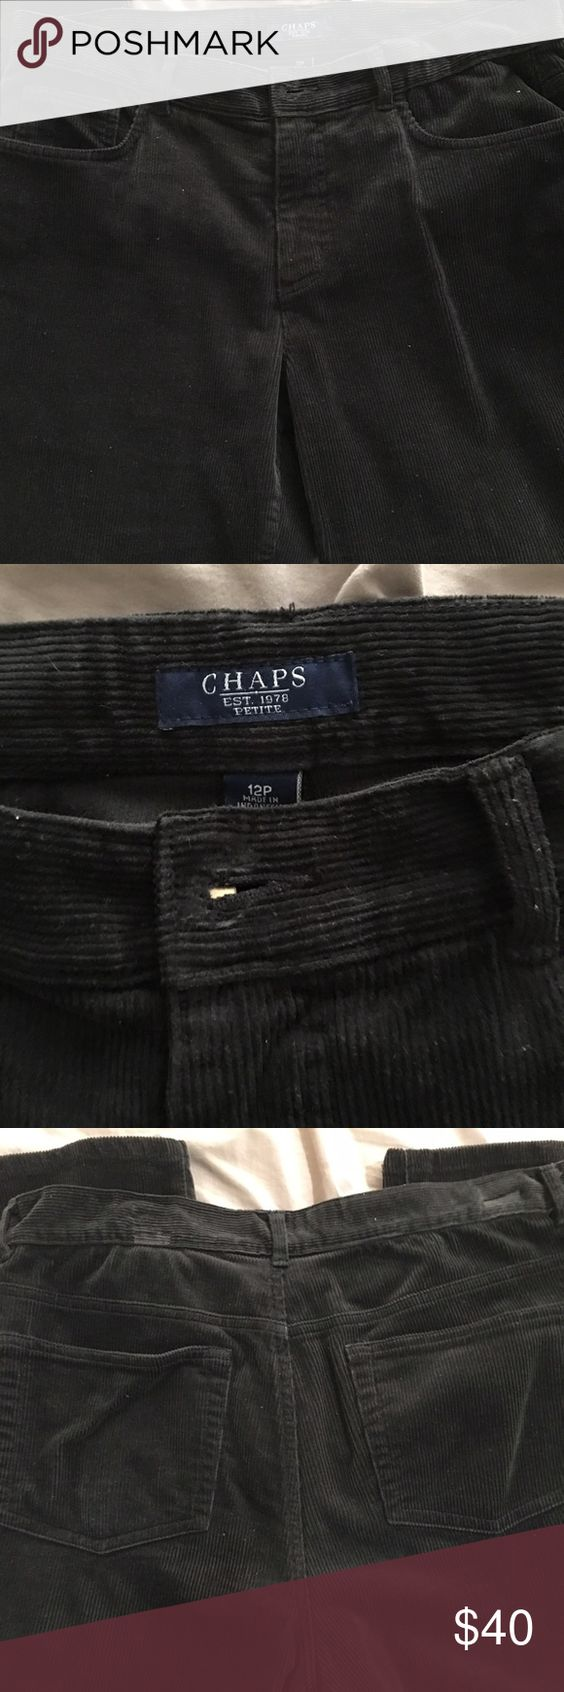 Chaps Brown Corduroy Pants Women's Chaps Corduroy Pants in dark brown Straight Leg. Size 12 Petite. Good condition. Zipper and button intact to close Pants. Pants have belt loops and two pockets on the front and back. Offers accepted. Chaps Pants Straight Leg